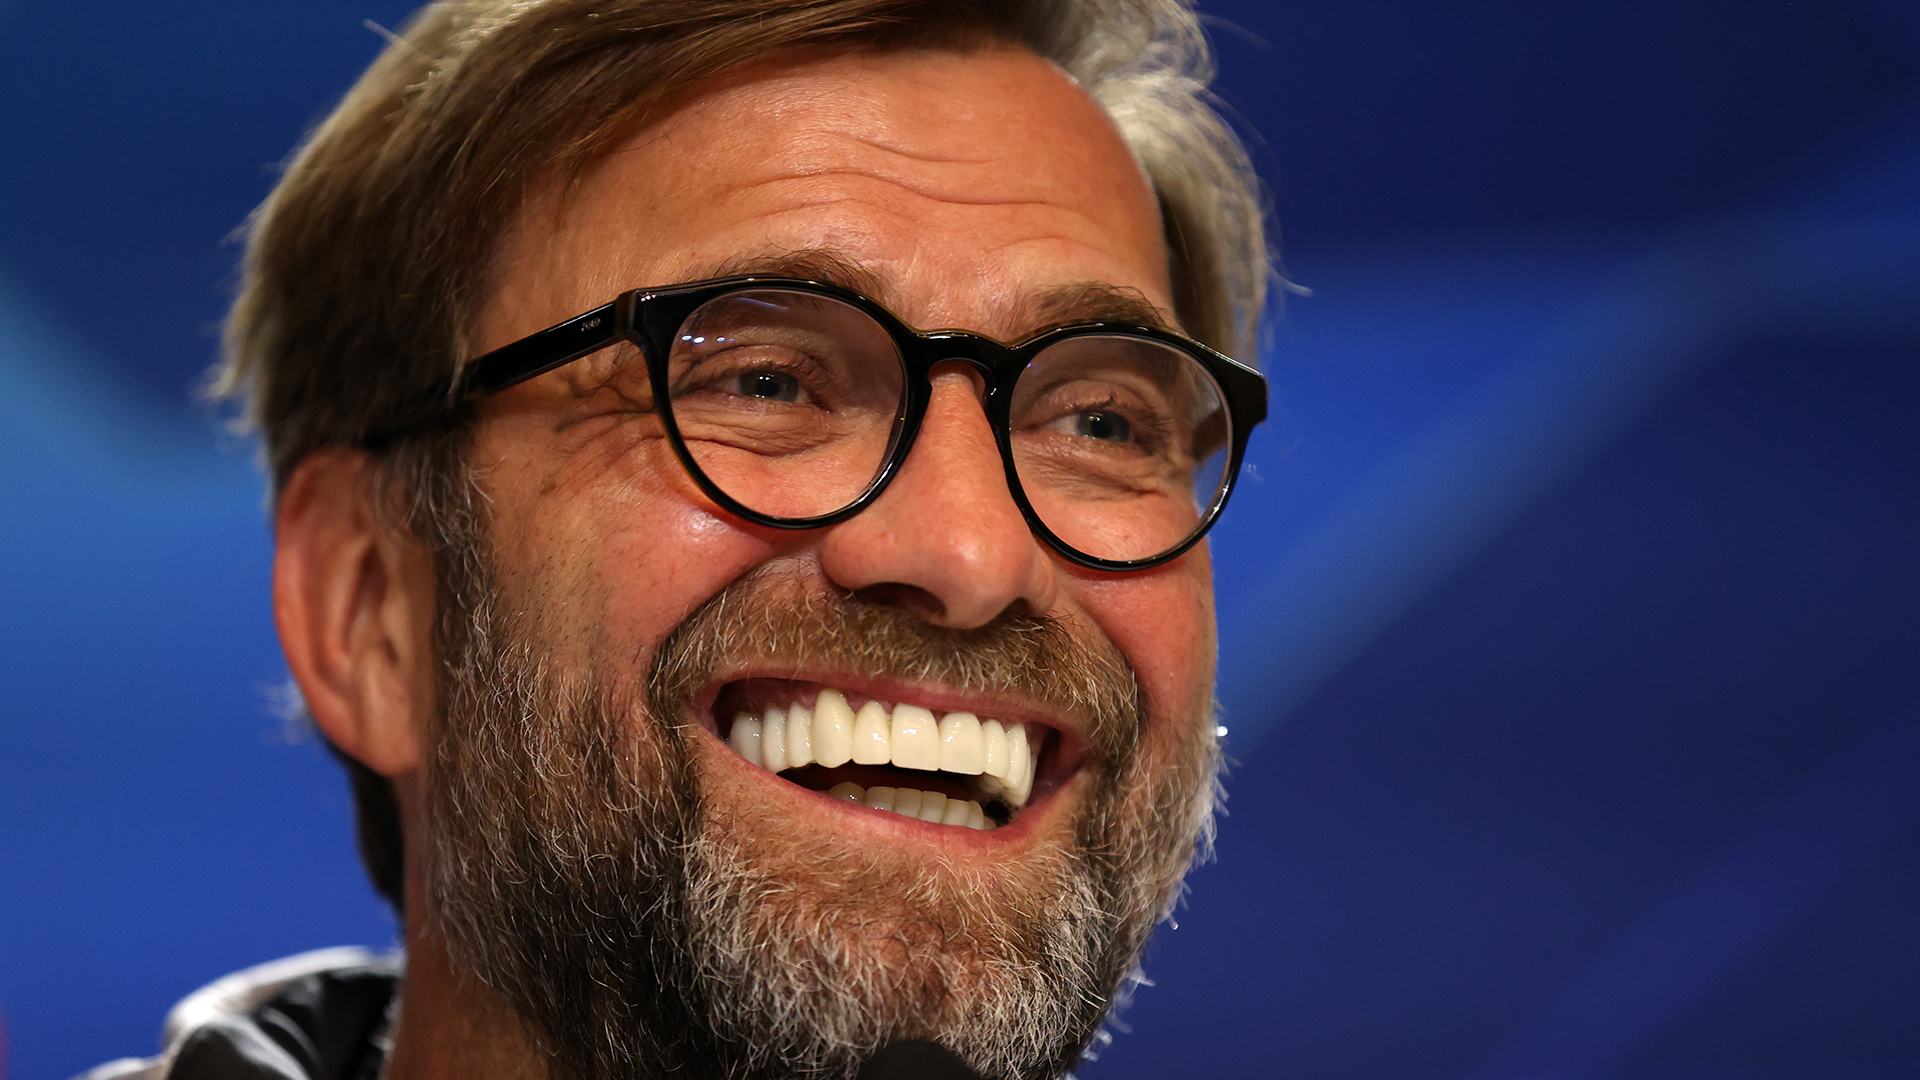 Klopp will become the Germany coach, but only when he decides – Voller